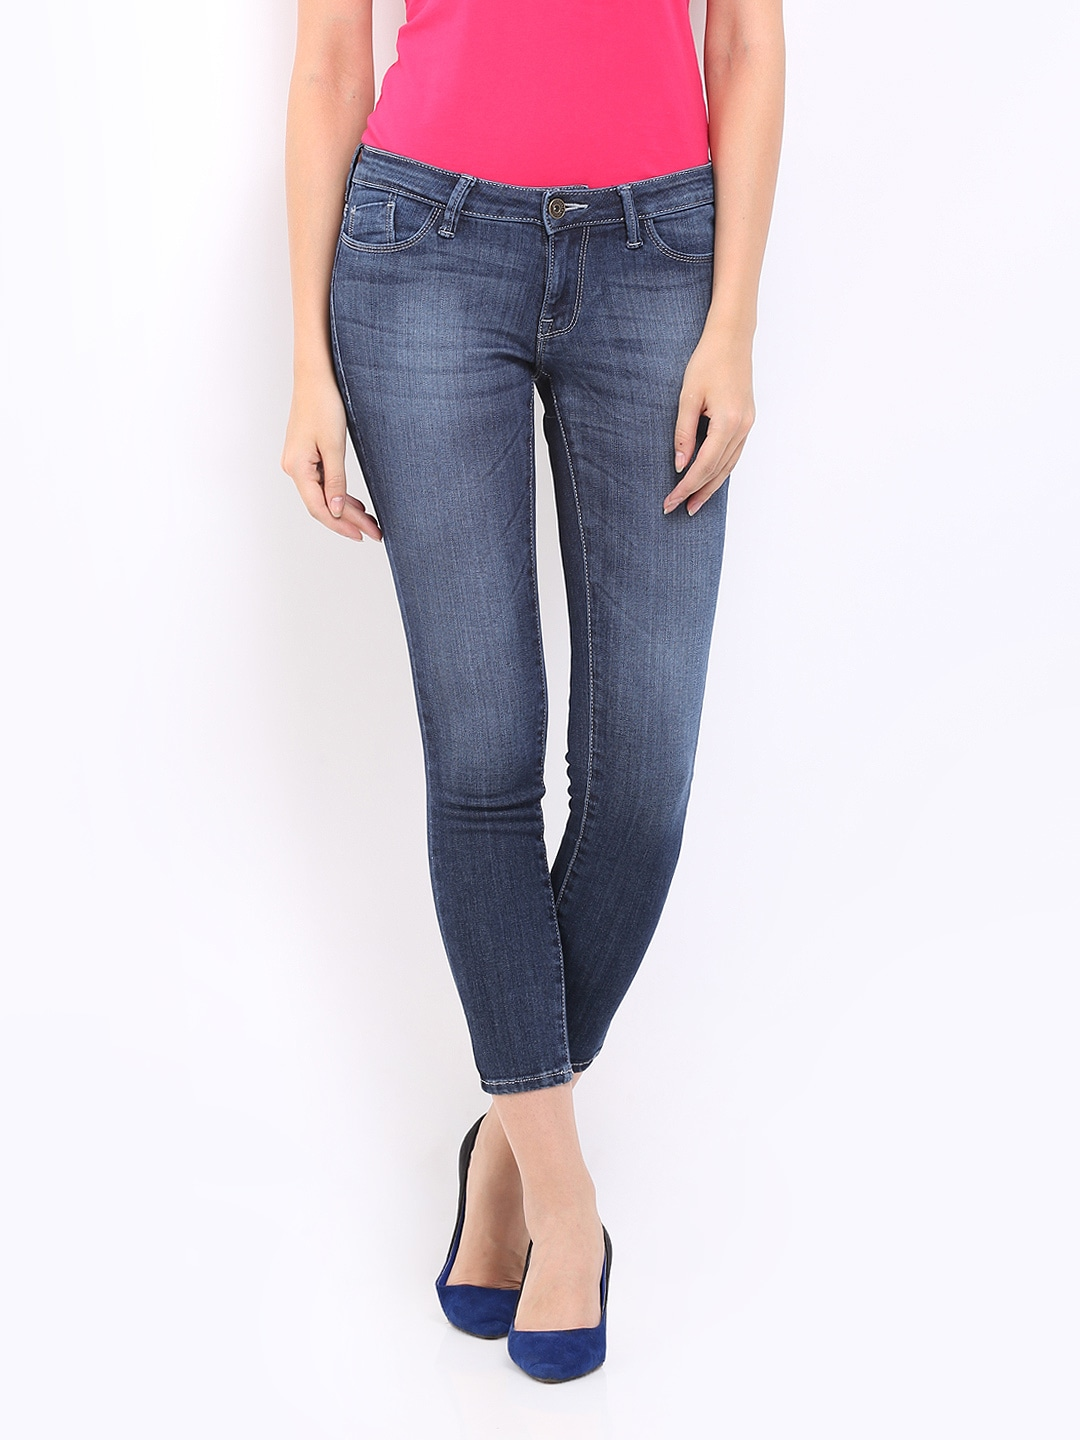 Buy Online Jeans For Womens